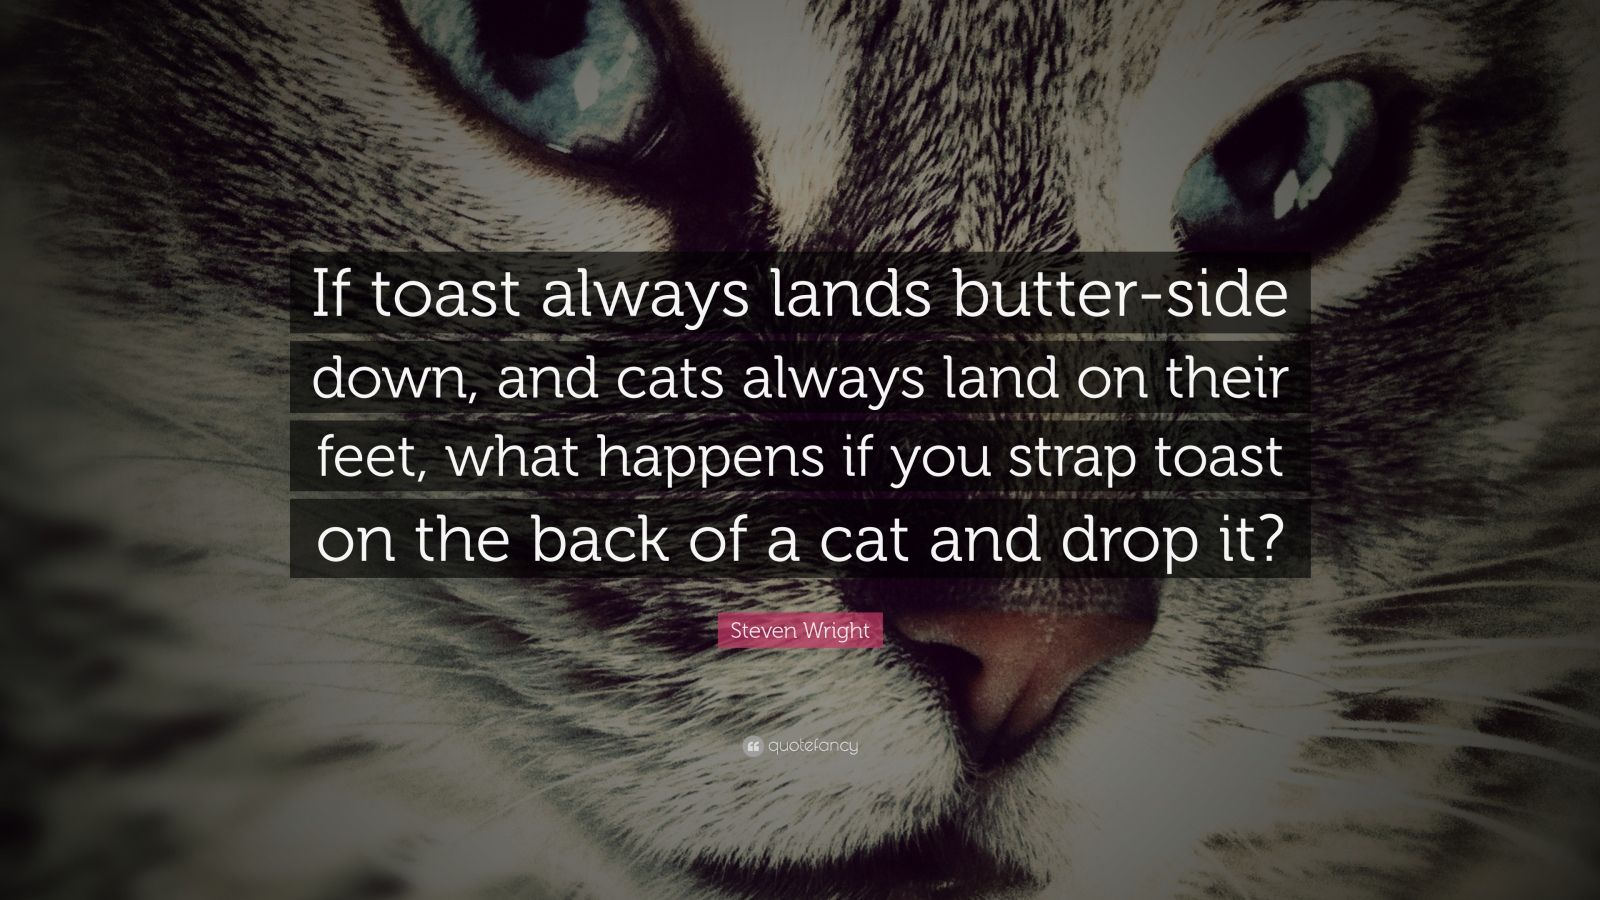 """Steven Wright Quote: """"If toast always lands butter-side down, and cats always land on their feet, what happens if you strap toast on the back of a cat and drop it?"""""""